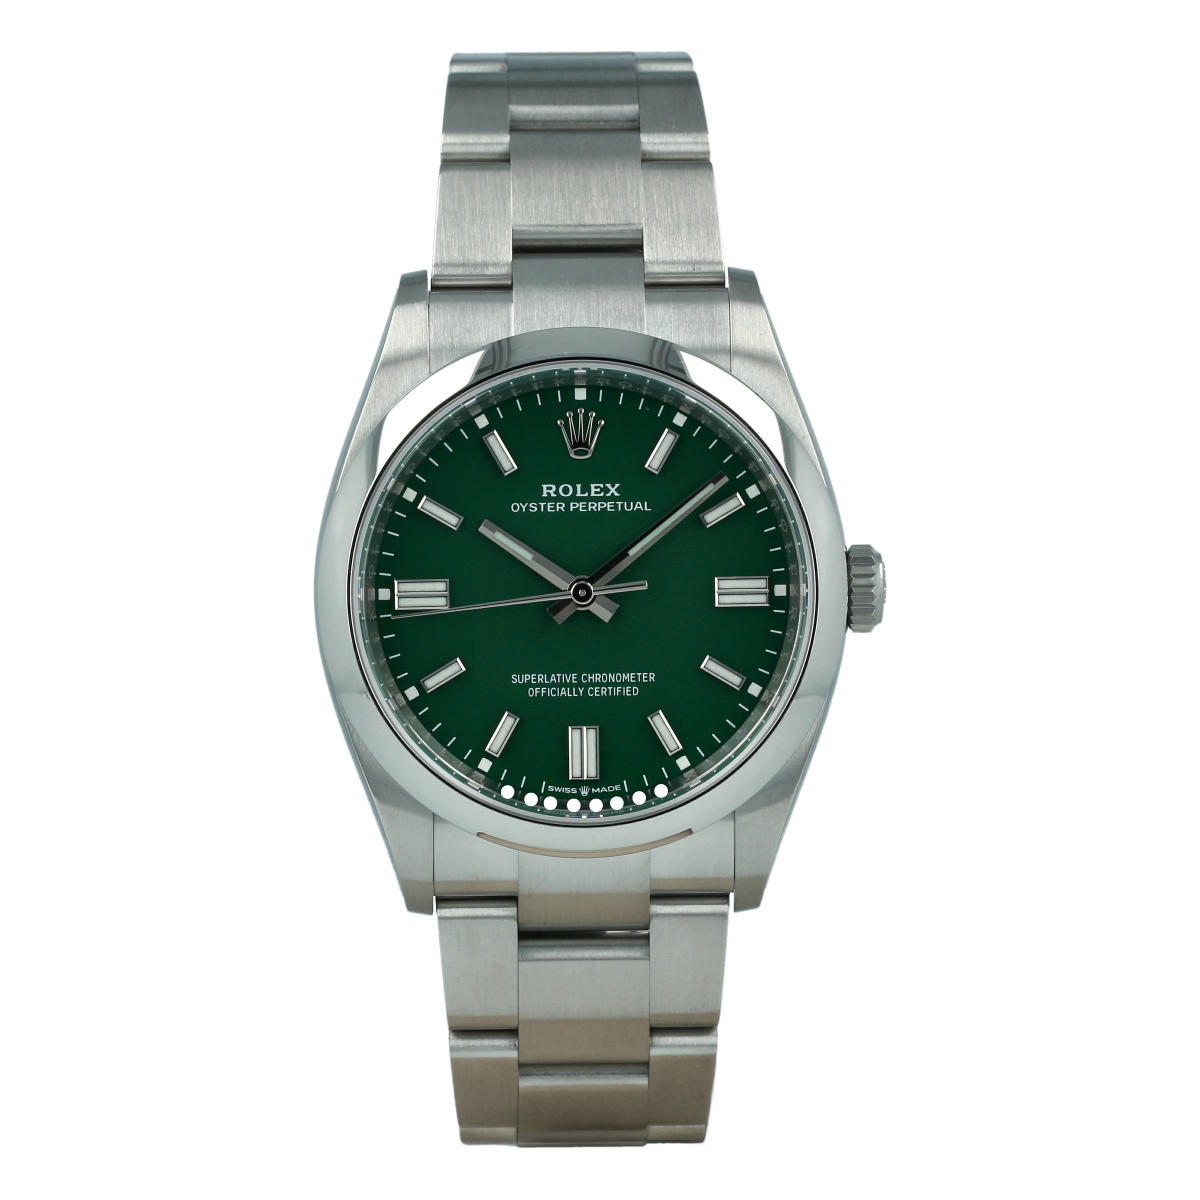 Rolex Oyster Perpetual 126000 36mm Green Dial *New Model* [ID14952]